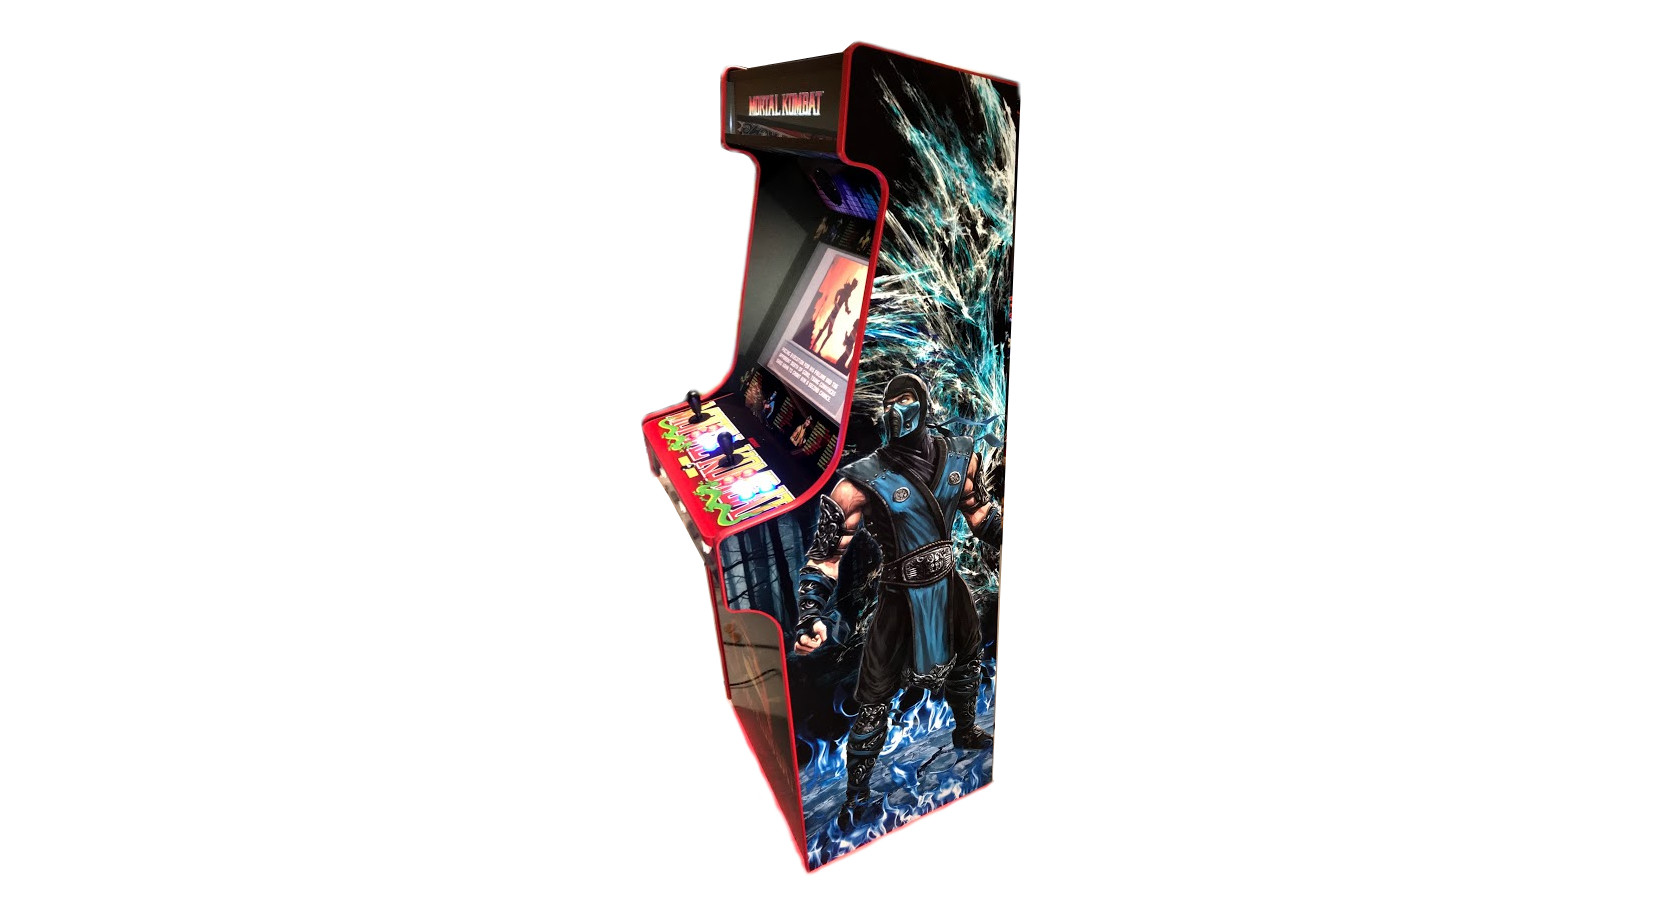 Classic Upright Arcade Machine - Mortal Kombat theme - v4 - right photo